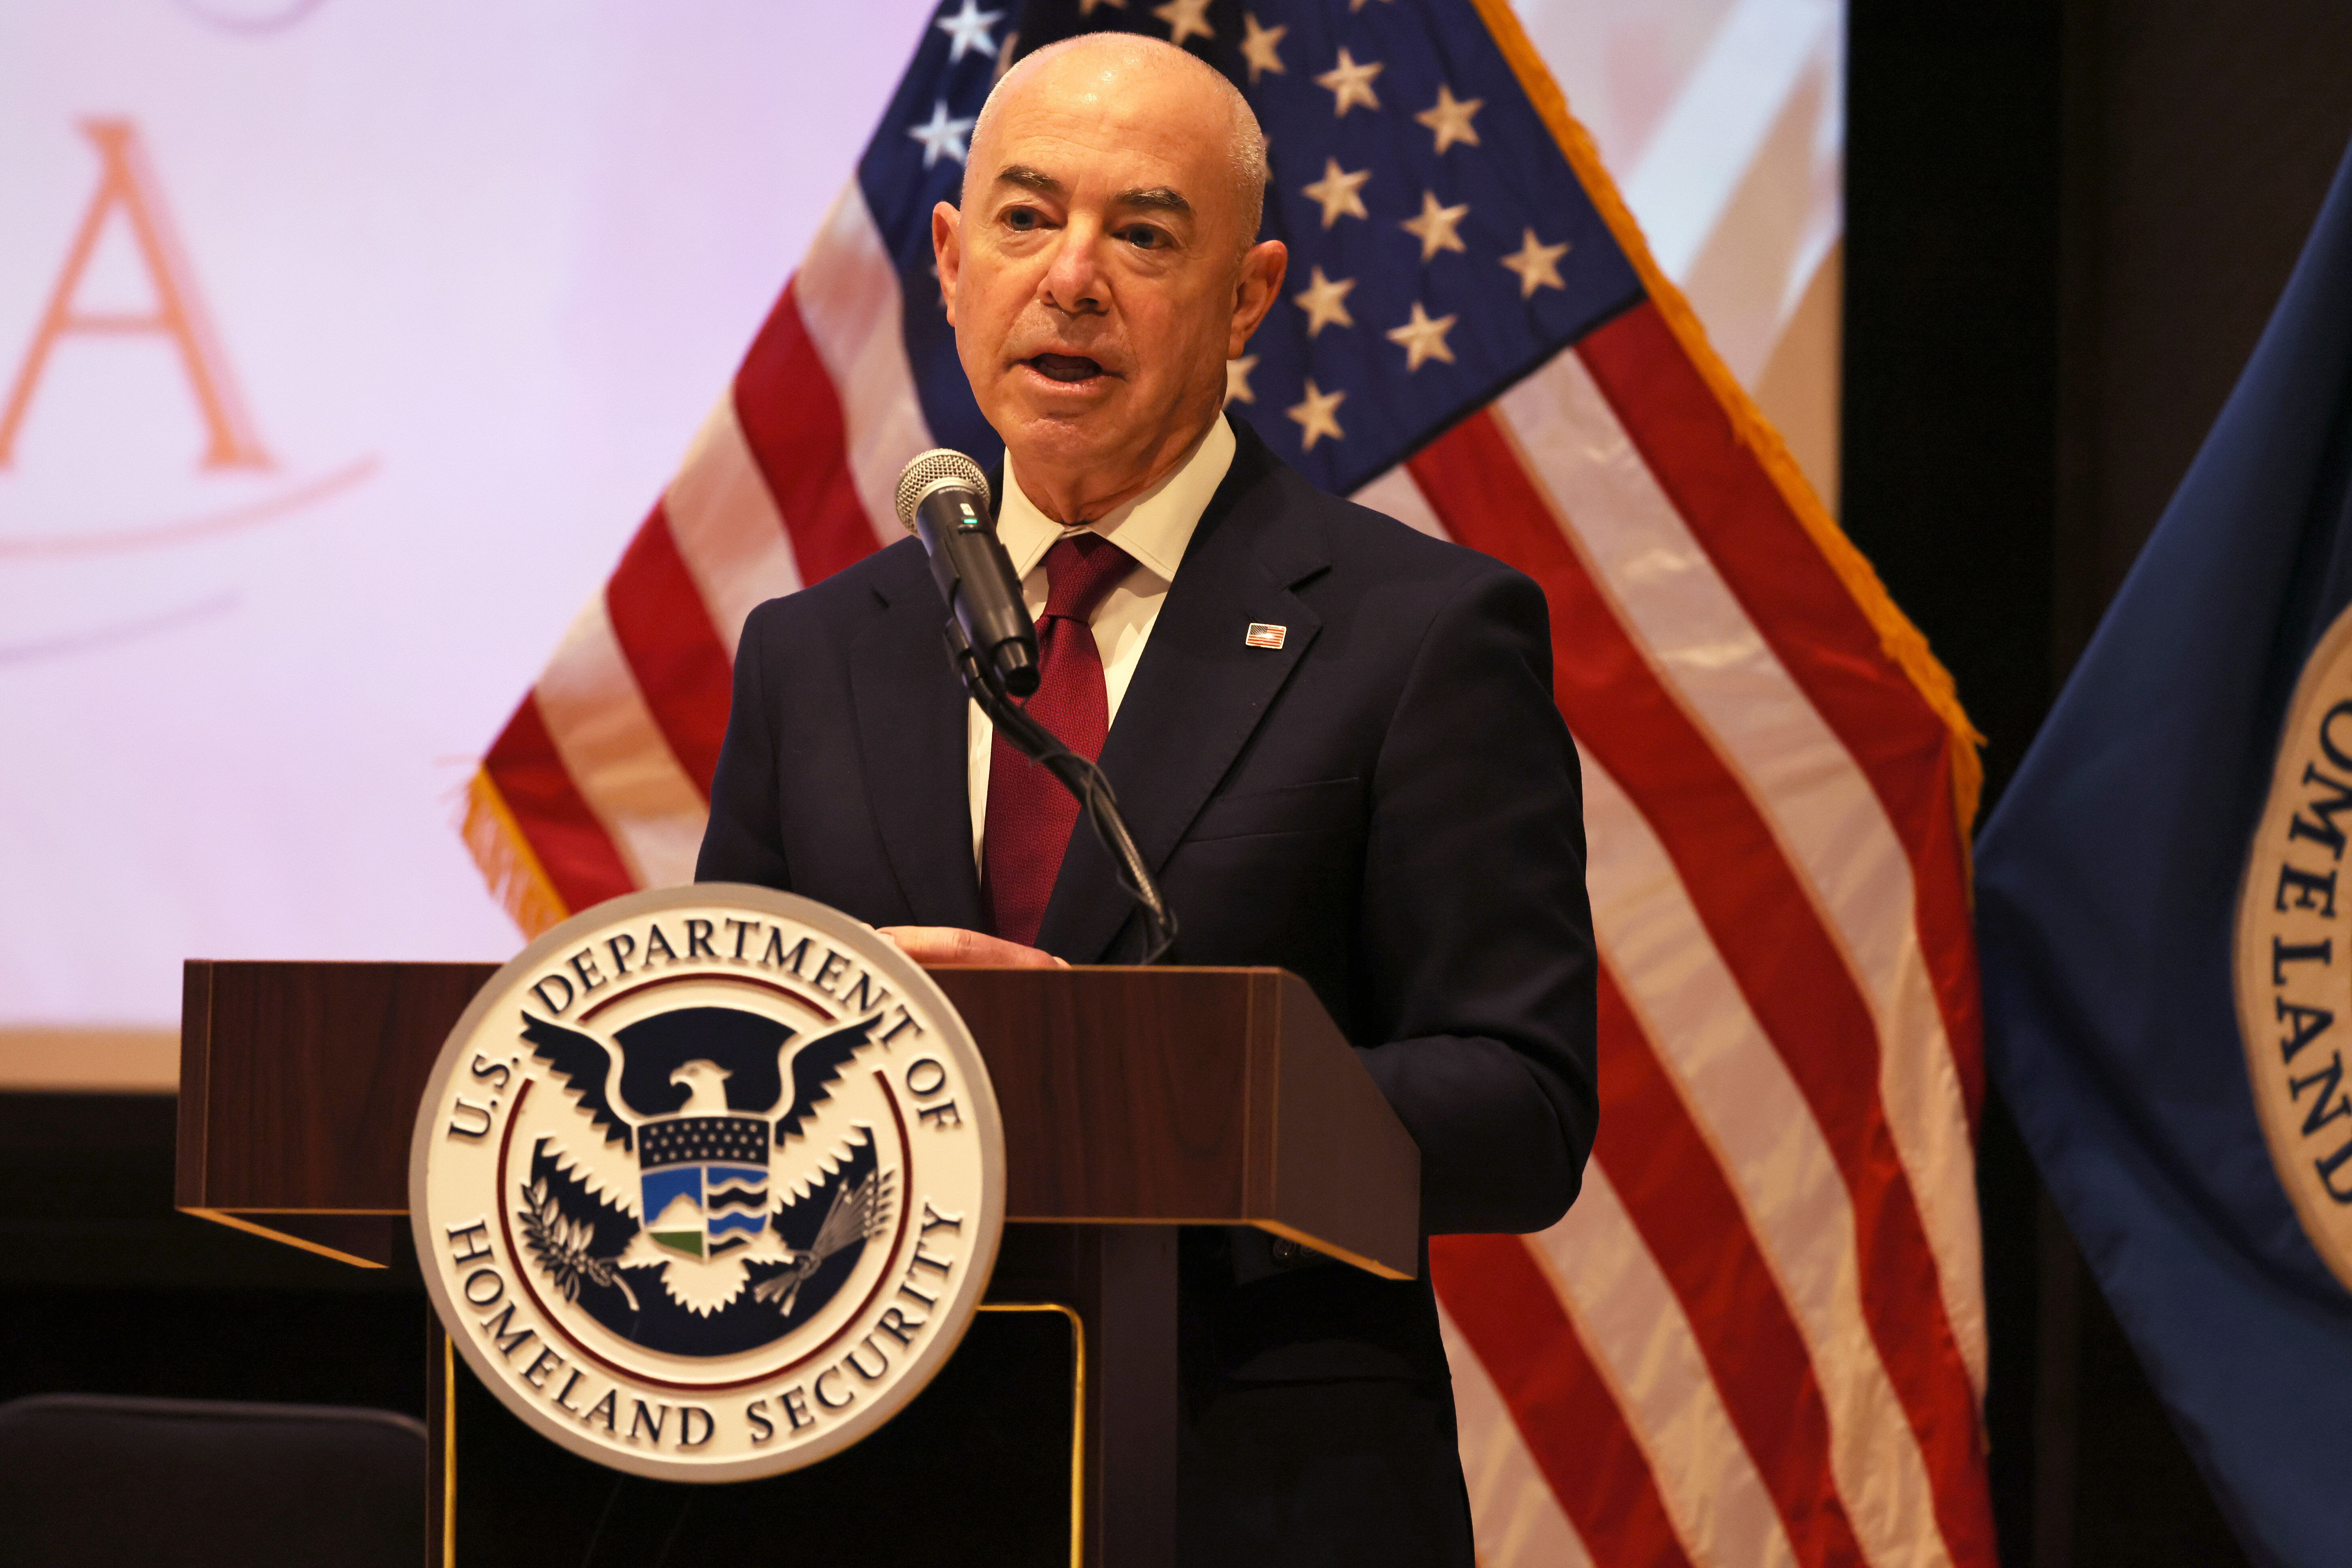 Alejandro Mayorkas, secretary of U.S. Department of Homeland Security, said the effort to reunite separated families is just